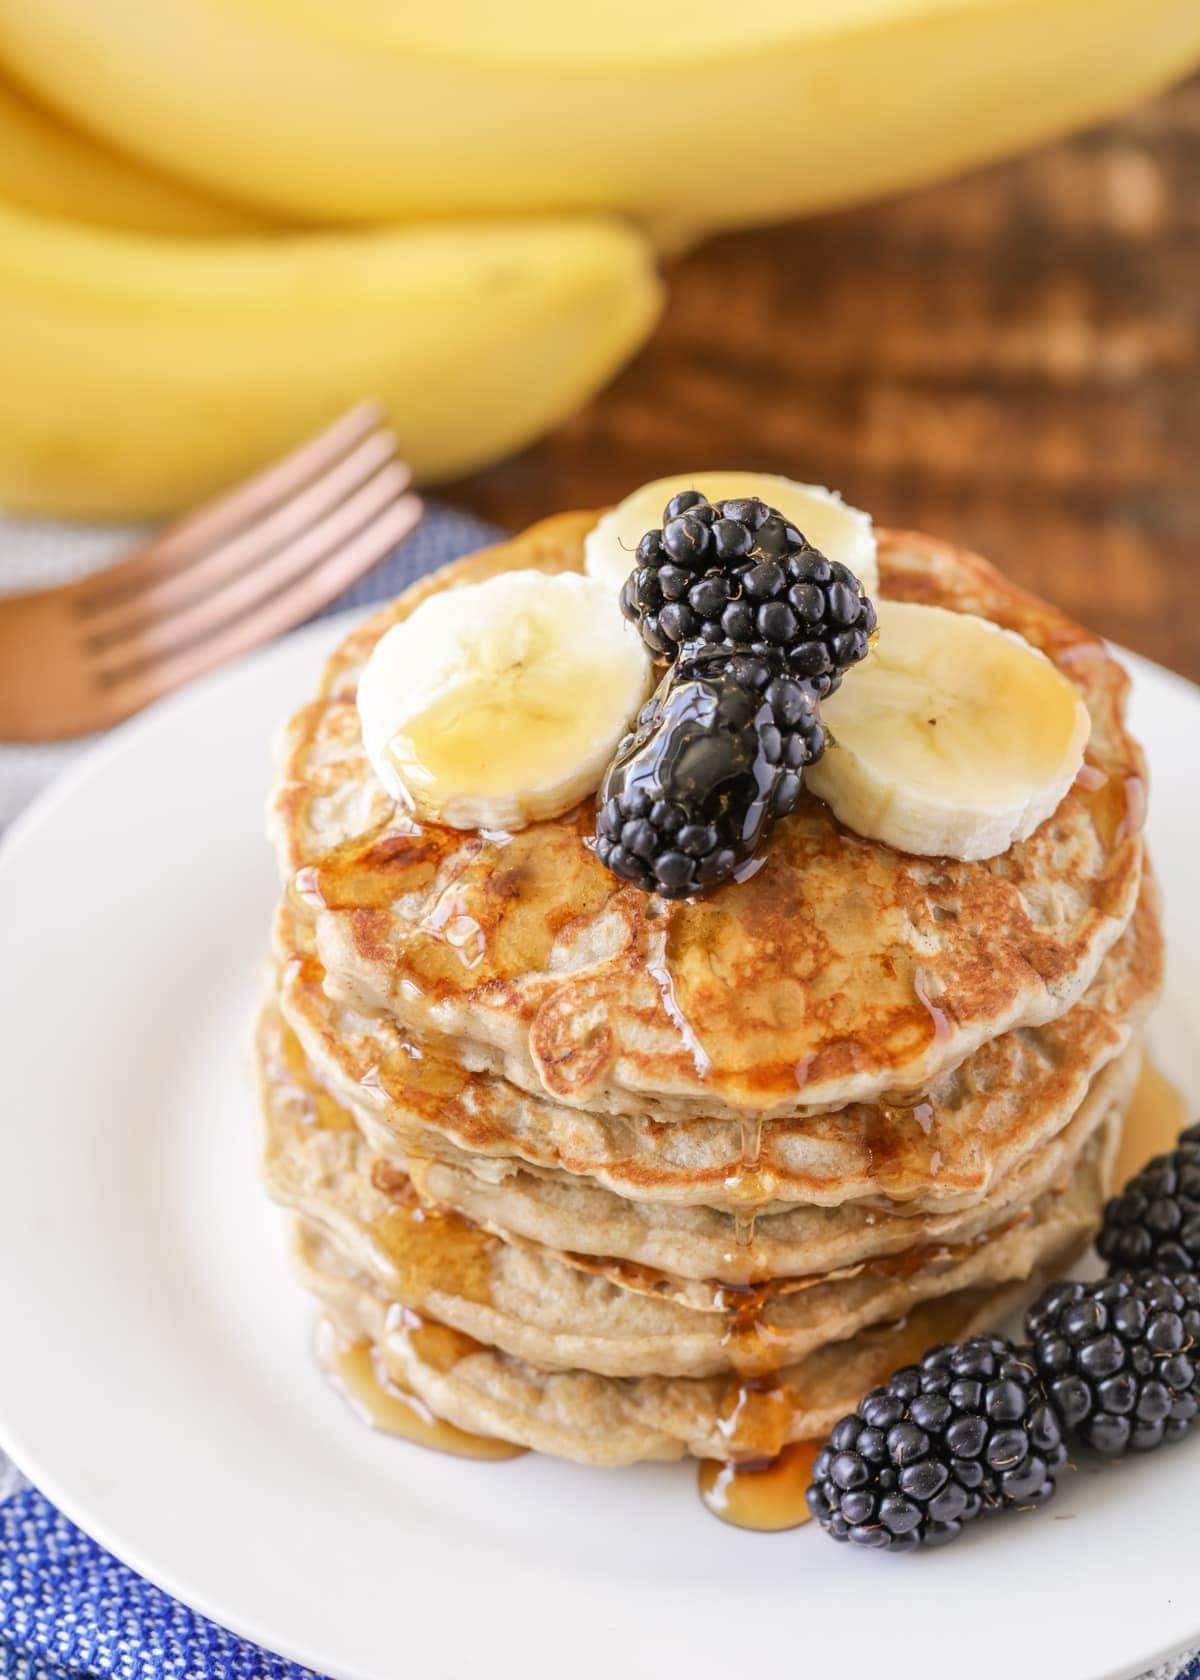 Banana oatmeal pancake recipe with berries and syrup on top